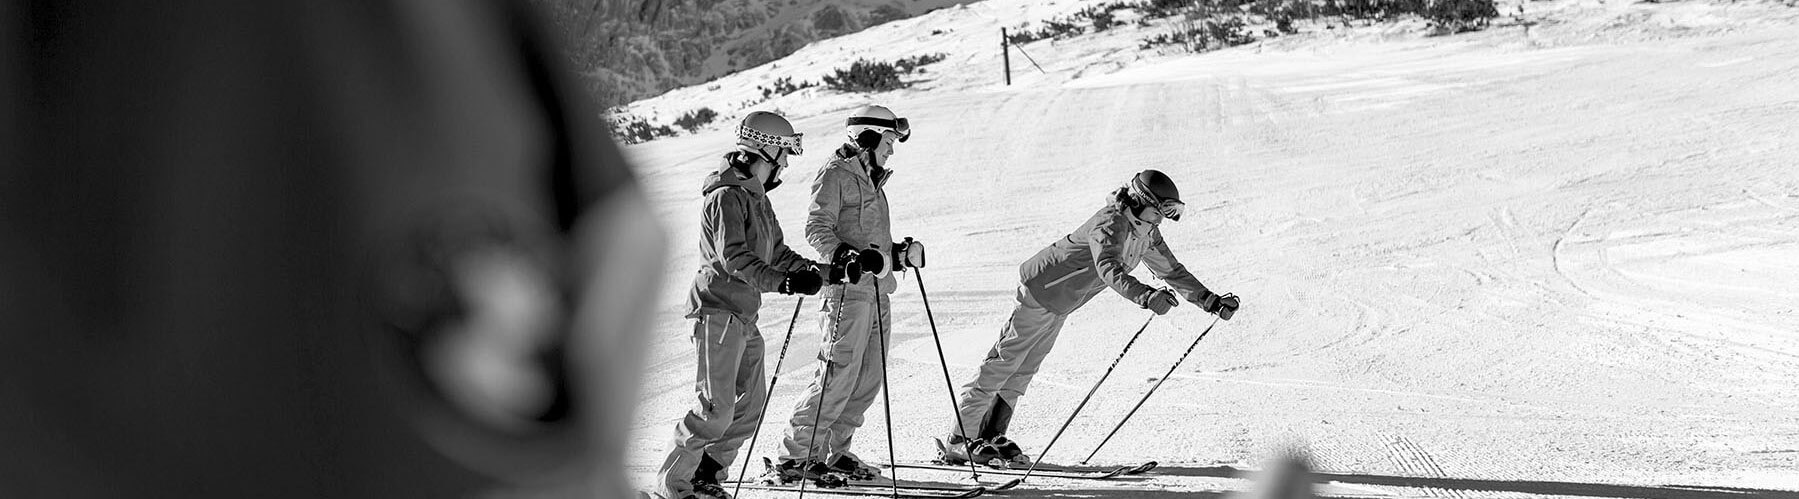 Ski lessons in Garmisch-Partenkirchen